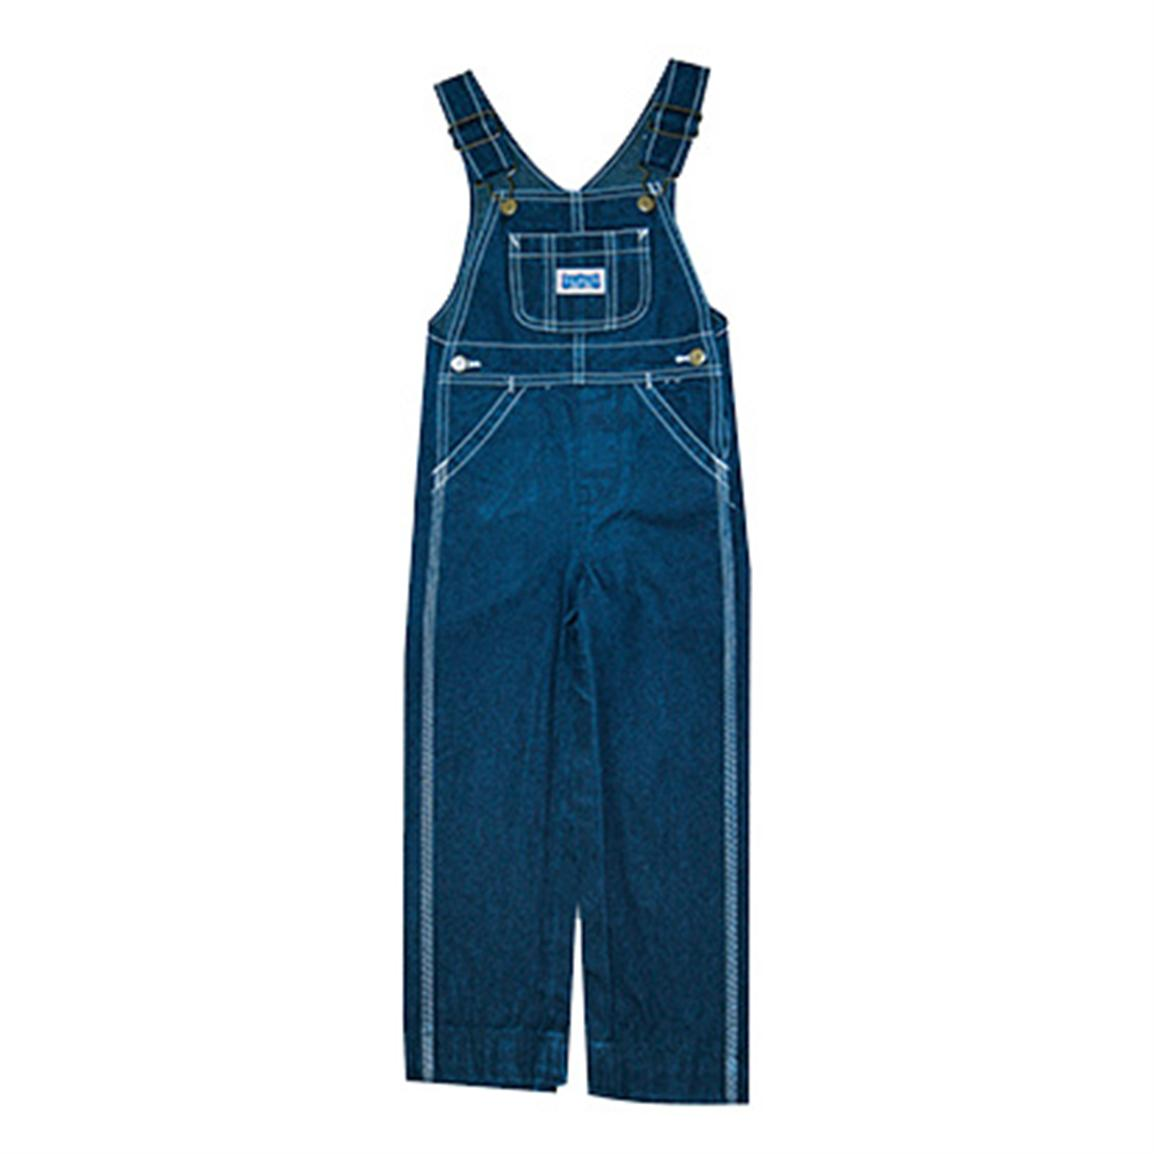 Big Smith® by Walls®  Youth Bib Overalls